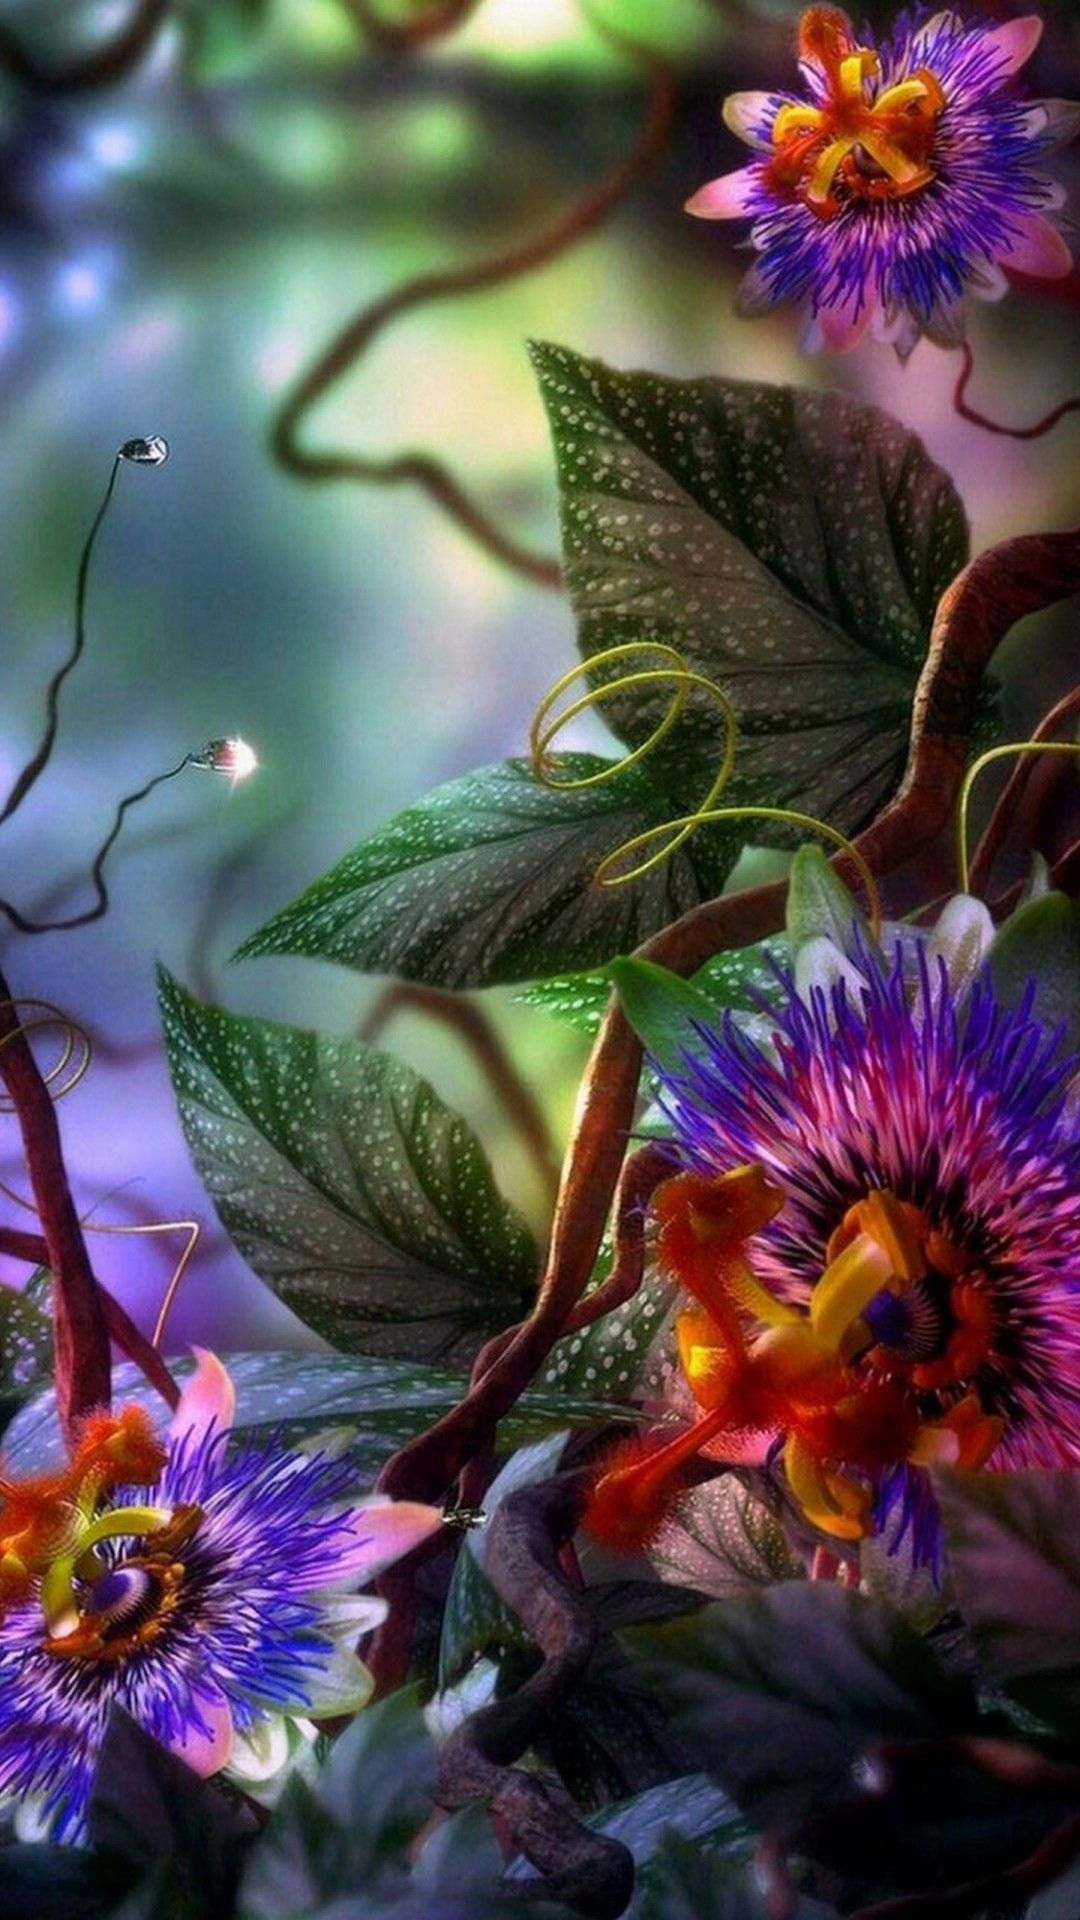 Wallpaper 3d Flower Mobile 3d Hd Wallpapers Flowers, Hd